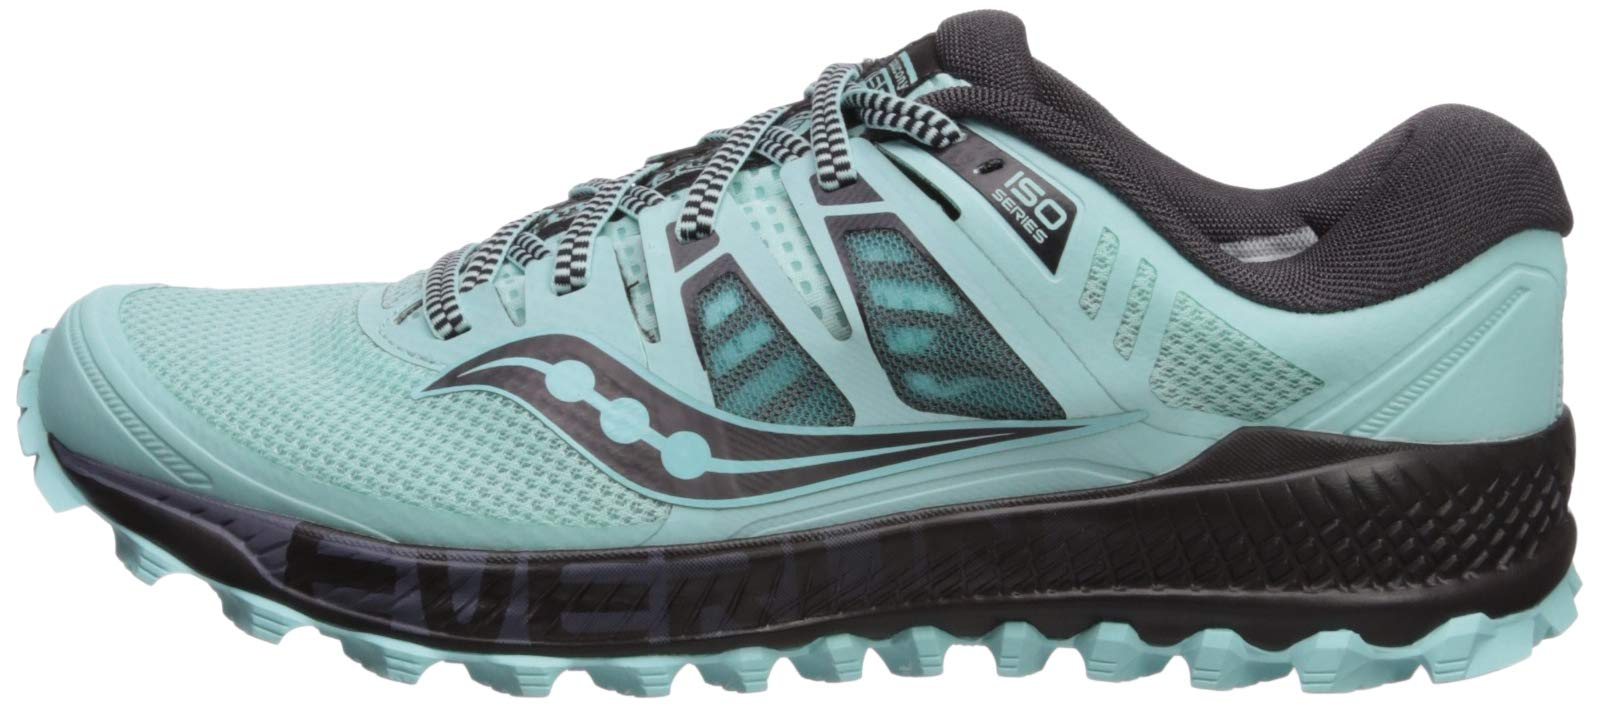 Saucony Women's Peregrine ISO Trail Running Shoe, Aqua/Grey, 5 M US by Saucony (Image #5)